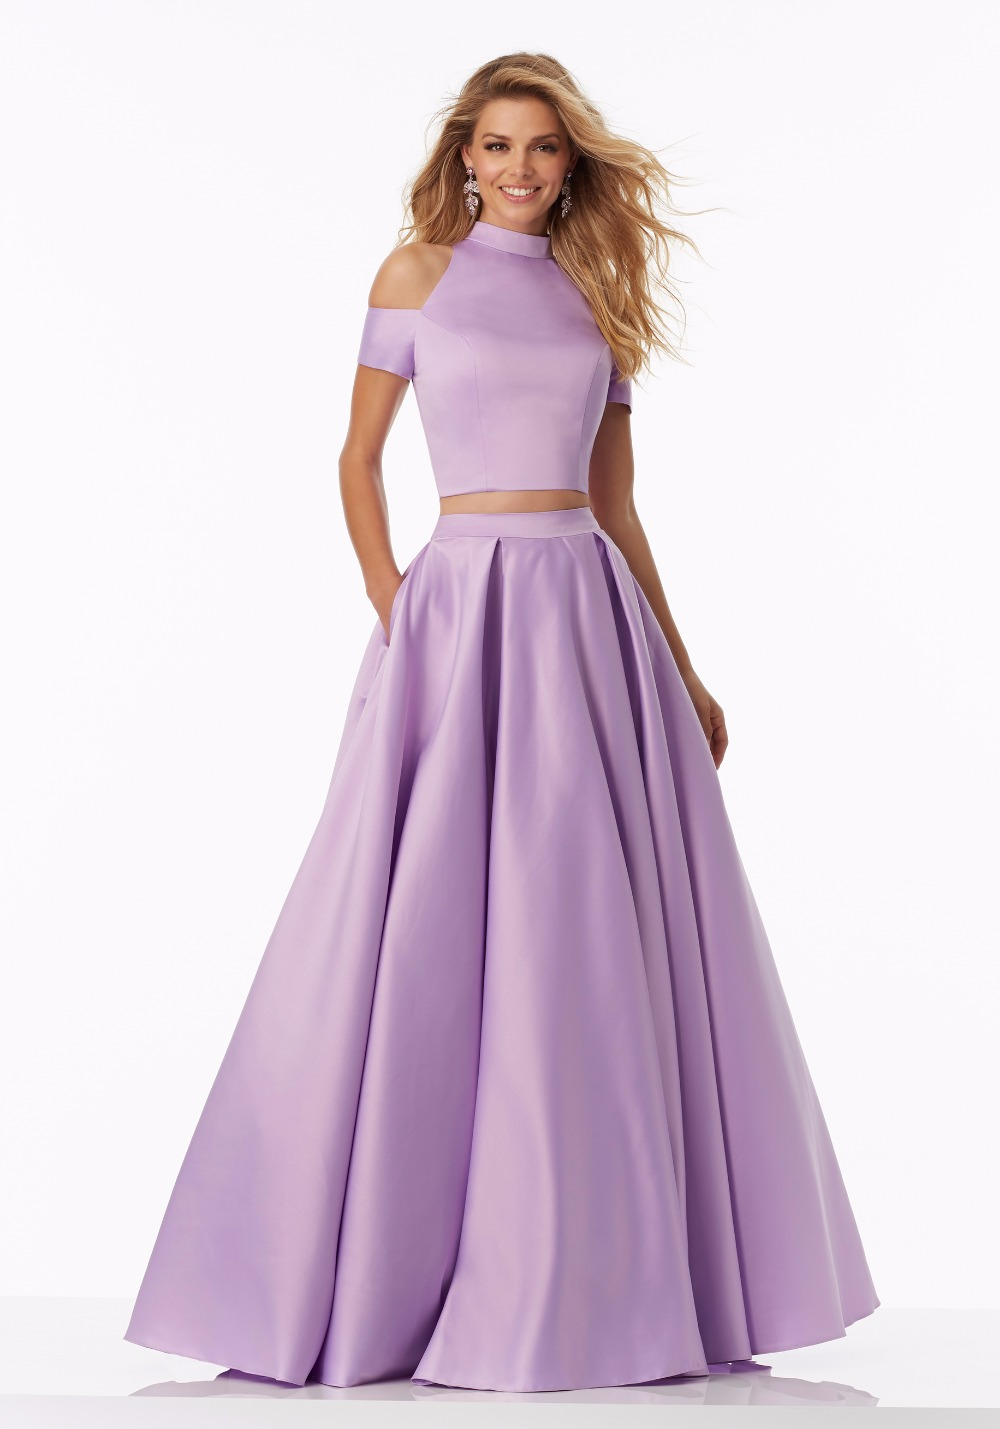 Simple Lilac Satin 2 Pieces Prom Dresses Long 2017 A line